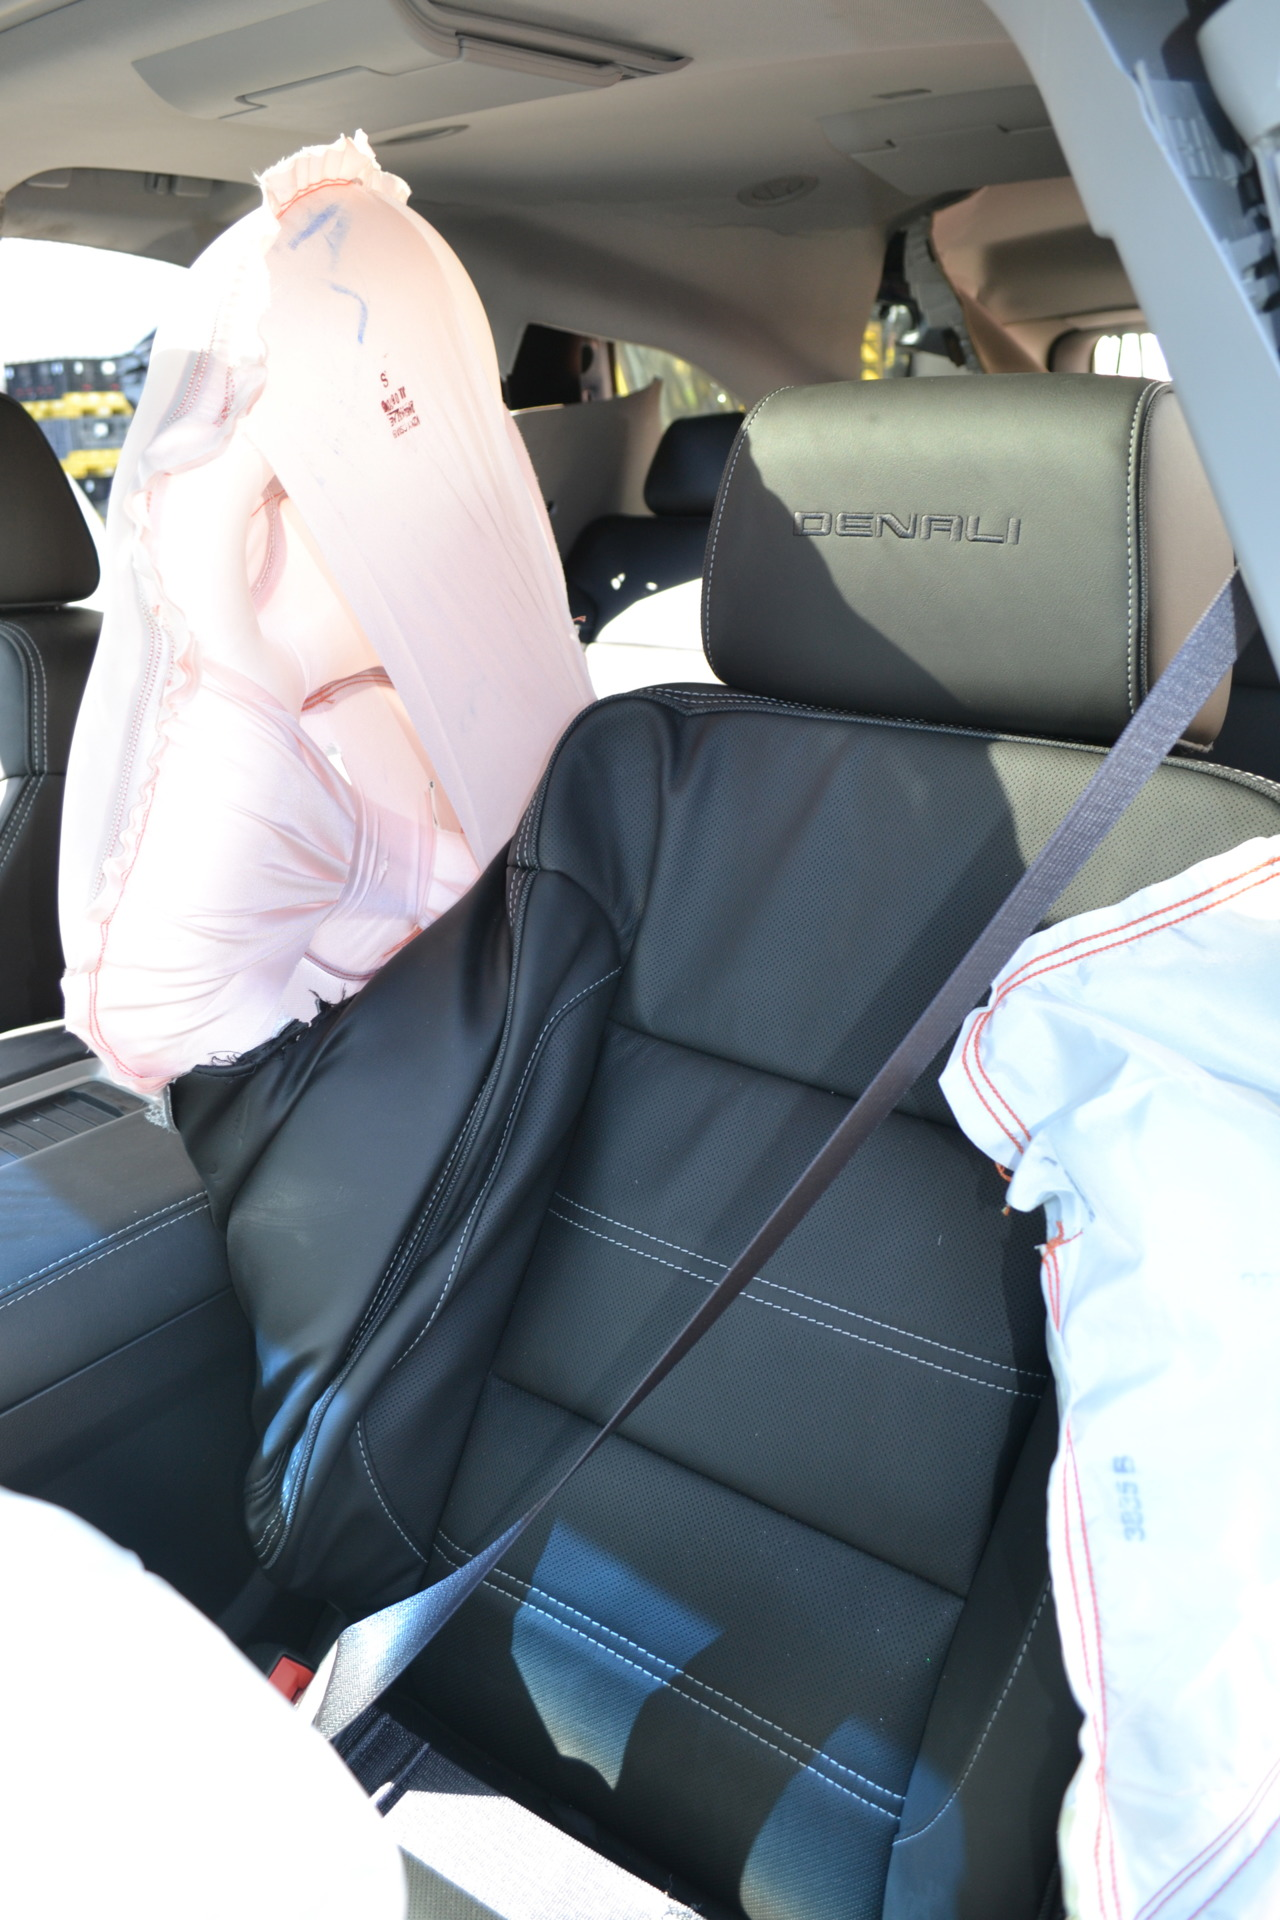 When The Gm Center Seat Airbag Deploys It Occupies Area Between Driver And Front Penger To Minimize Physical Contact During A Side